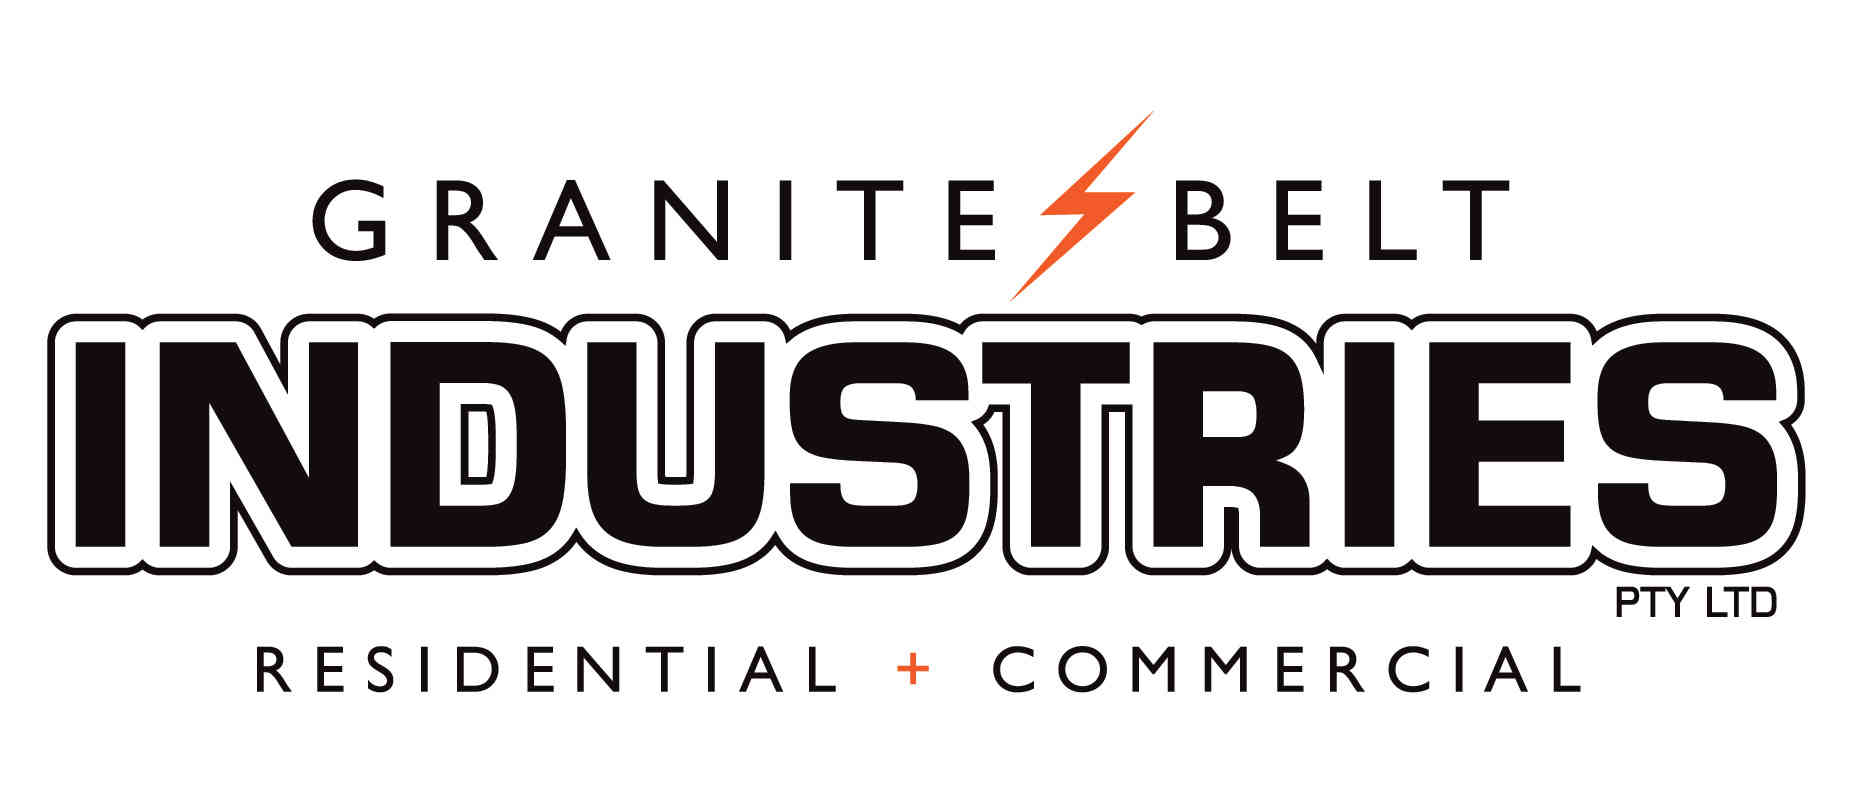 Granite Belt Industries_LOGO.jpg